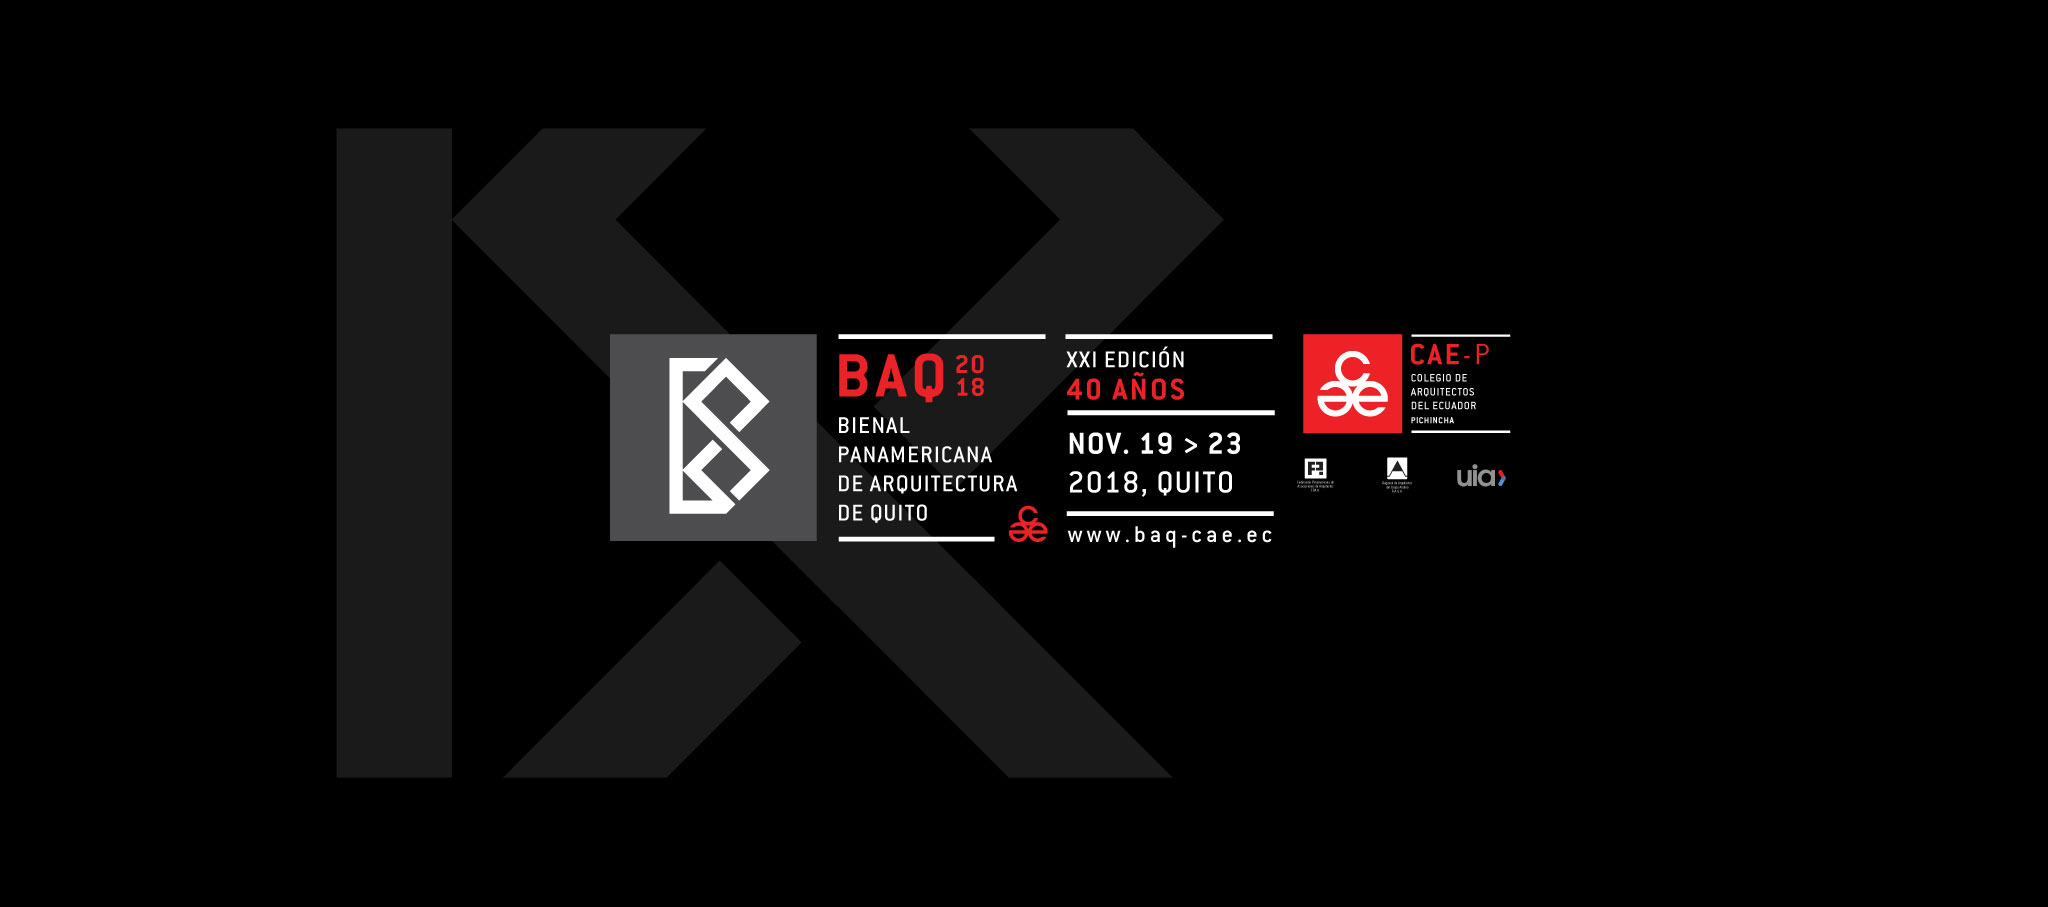 The countdown begins for the XXI edition of the Pan-American Architecture Biennial of Quito BAQ 2018. Courtesy of BAQ2018